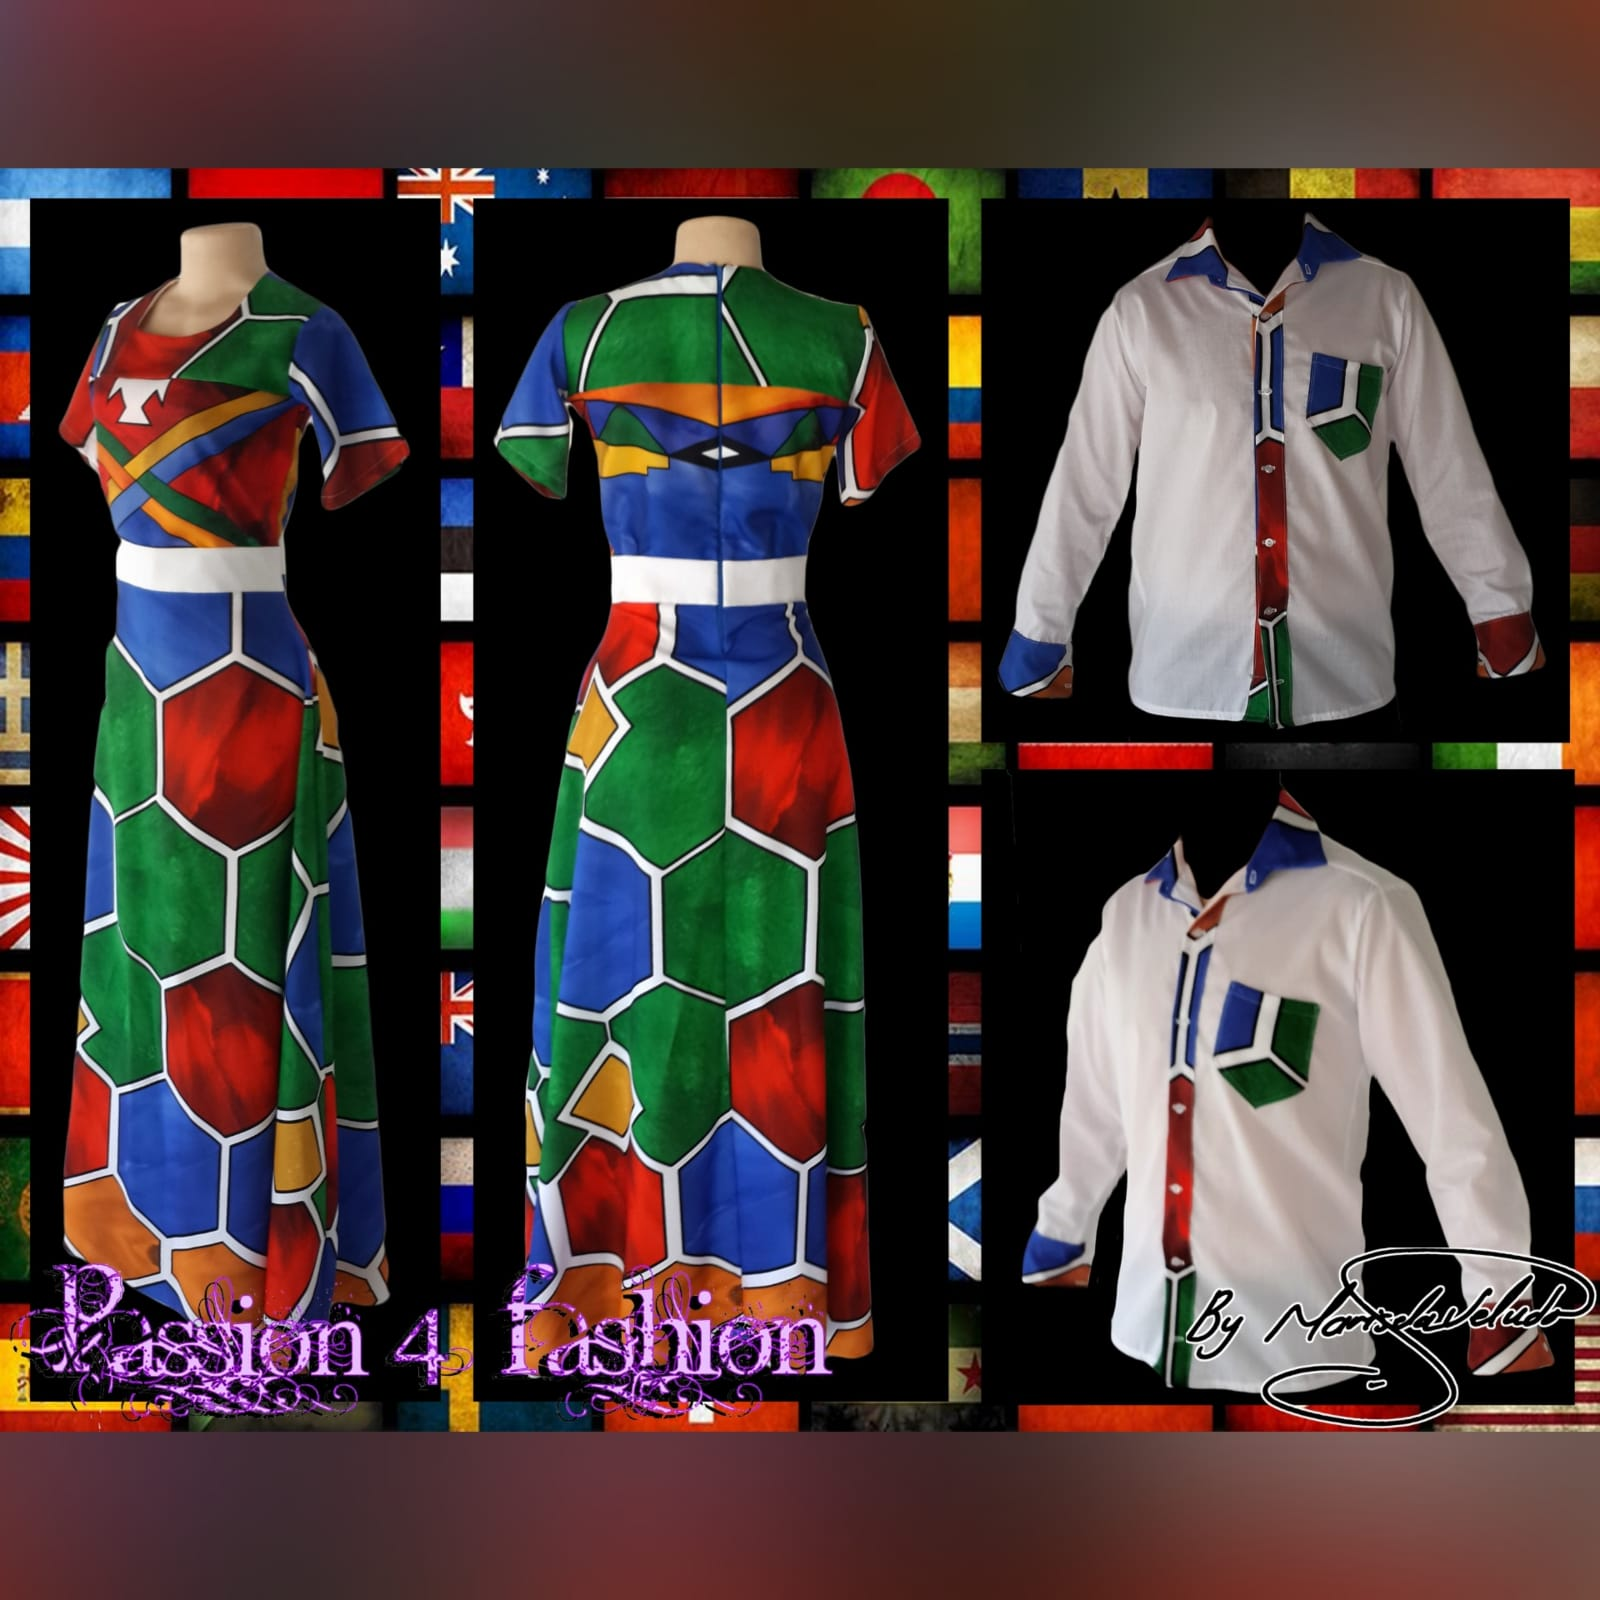 Ndebele empire fit dress with matching shirt 3 custom printed ndebele empire fit, long dress with a white under bust belt with men's matching shirt.